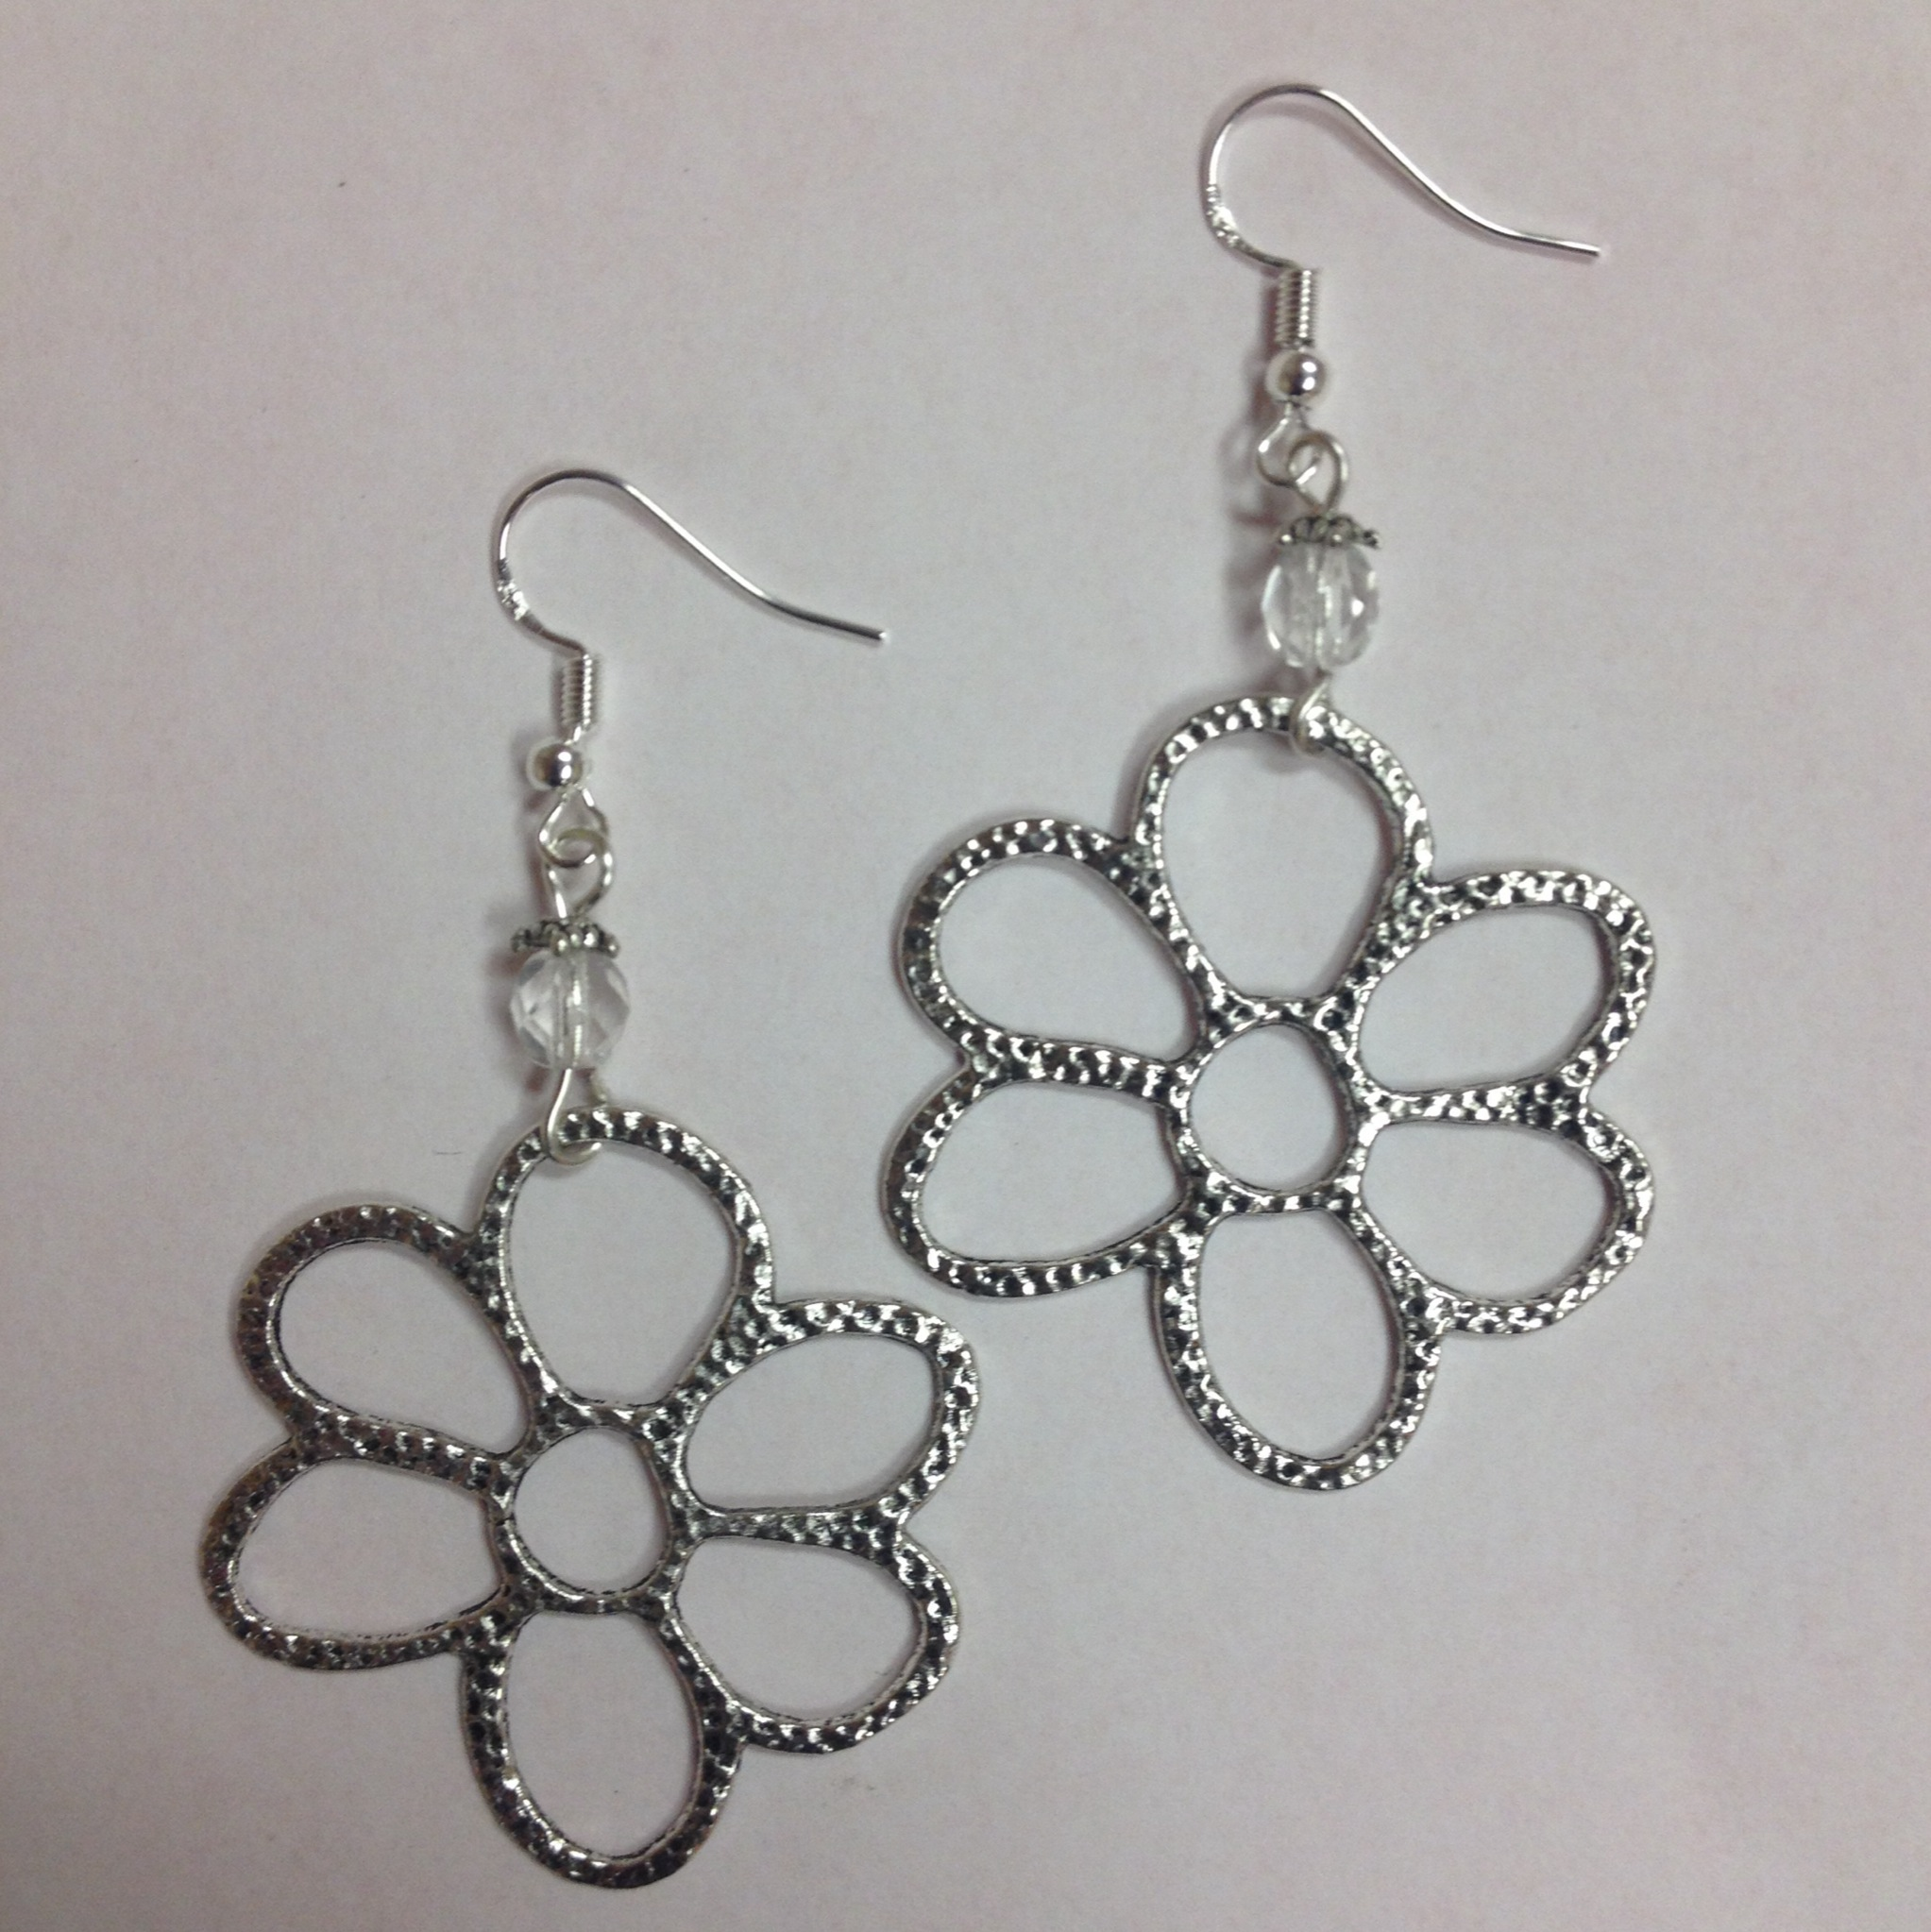 Daisy Or Flower Earrings With Faceted Clear Crystal Accent Beads On Sterling Silver Earwires